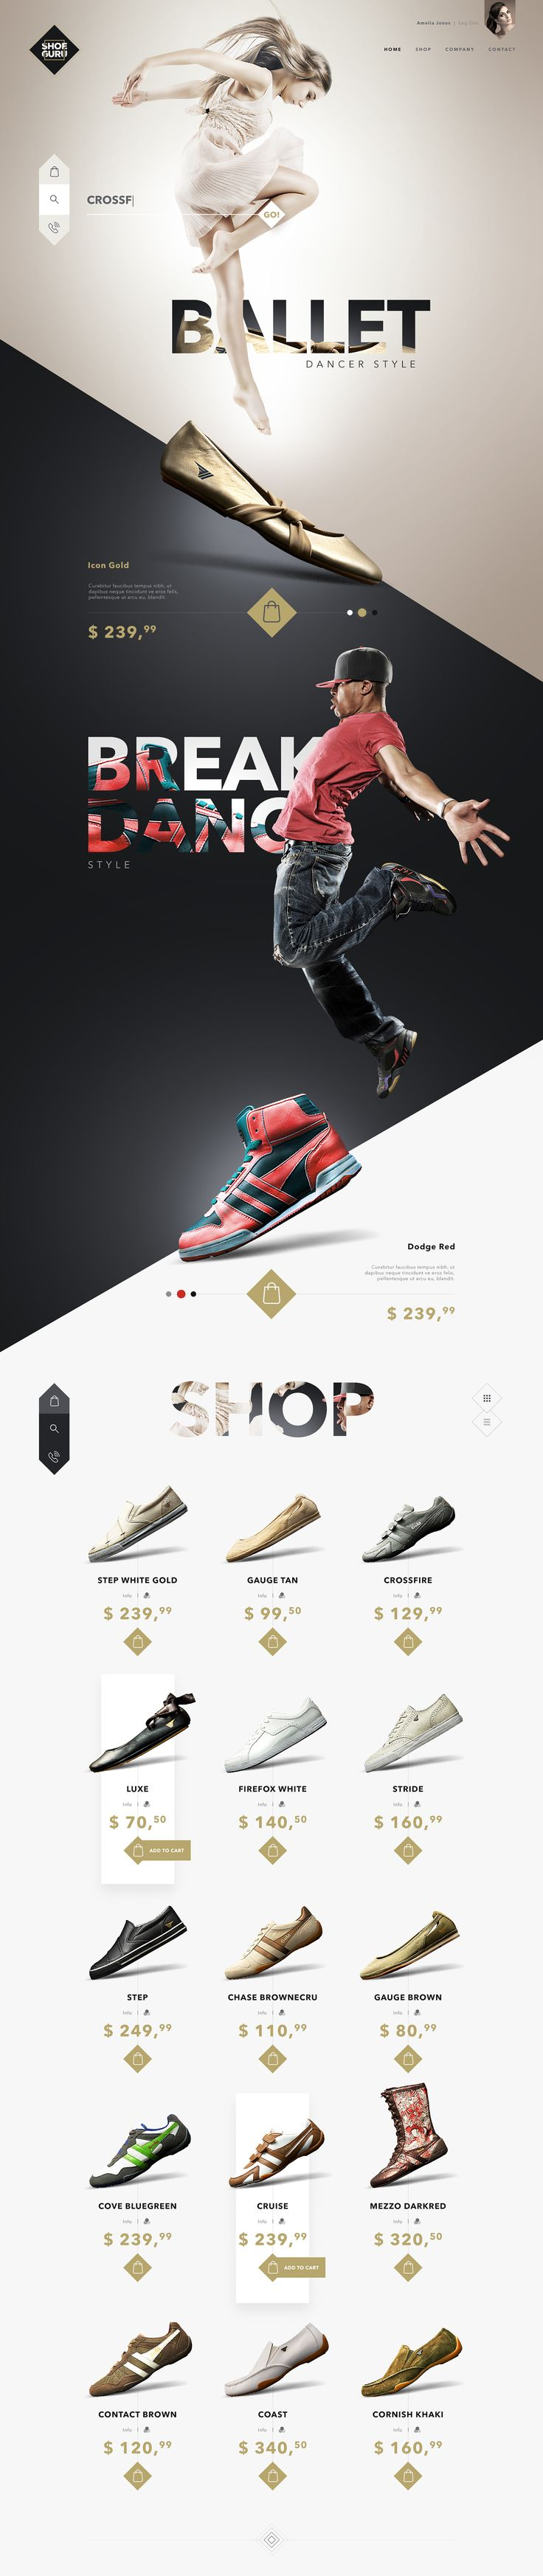 SHOE GURU Shop – Ui design and visual concept.